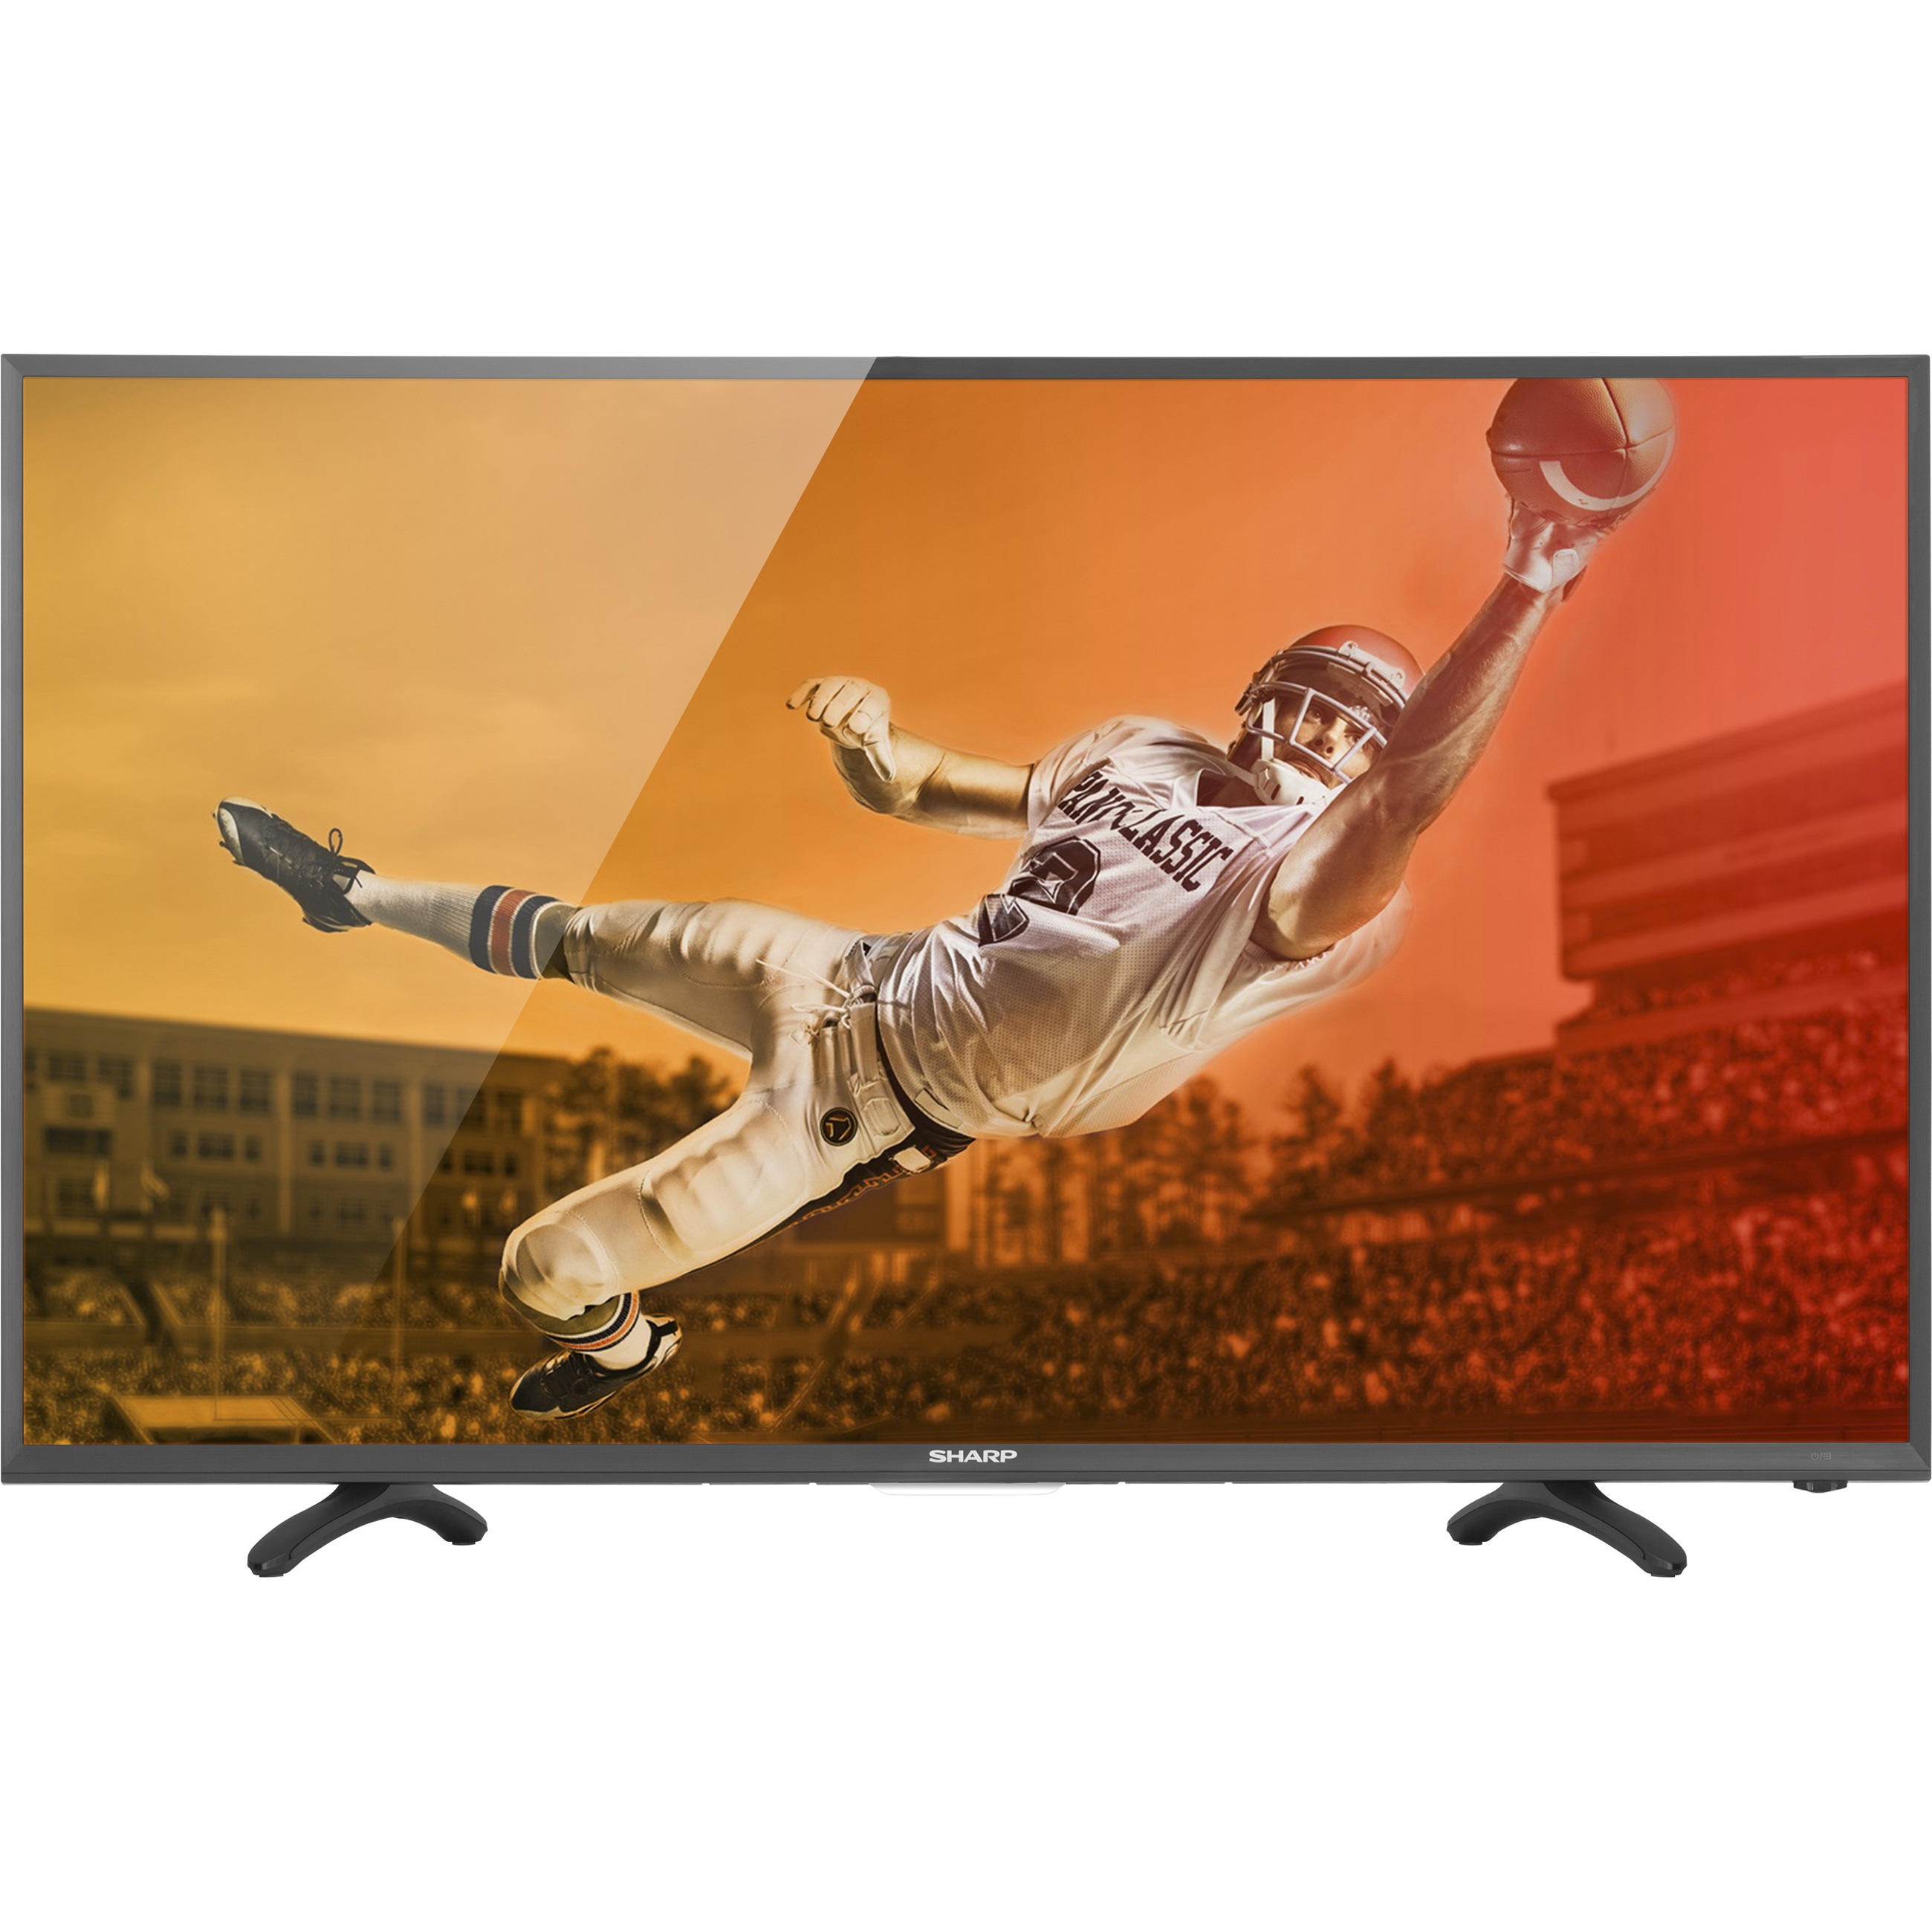 "Sharp Aquos N3000 Full HD 40"" Class 1080p 60Hz LED TV"